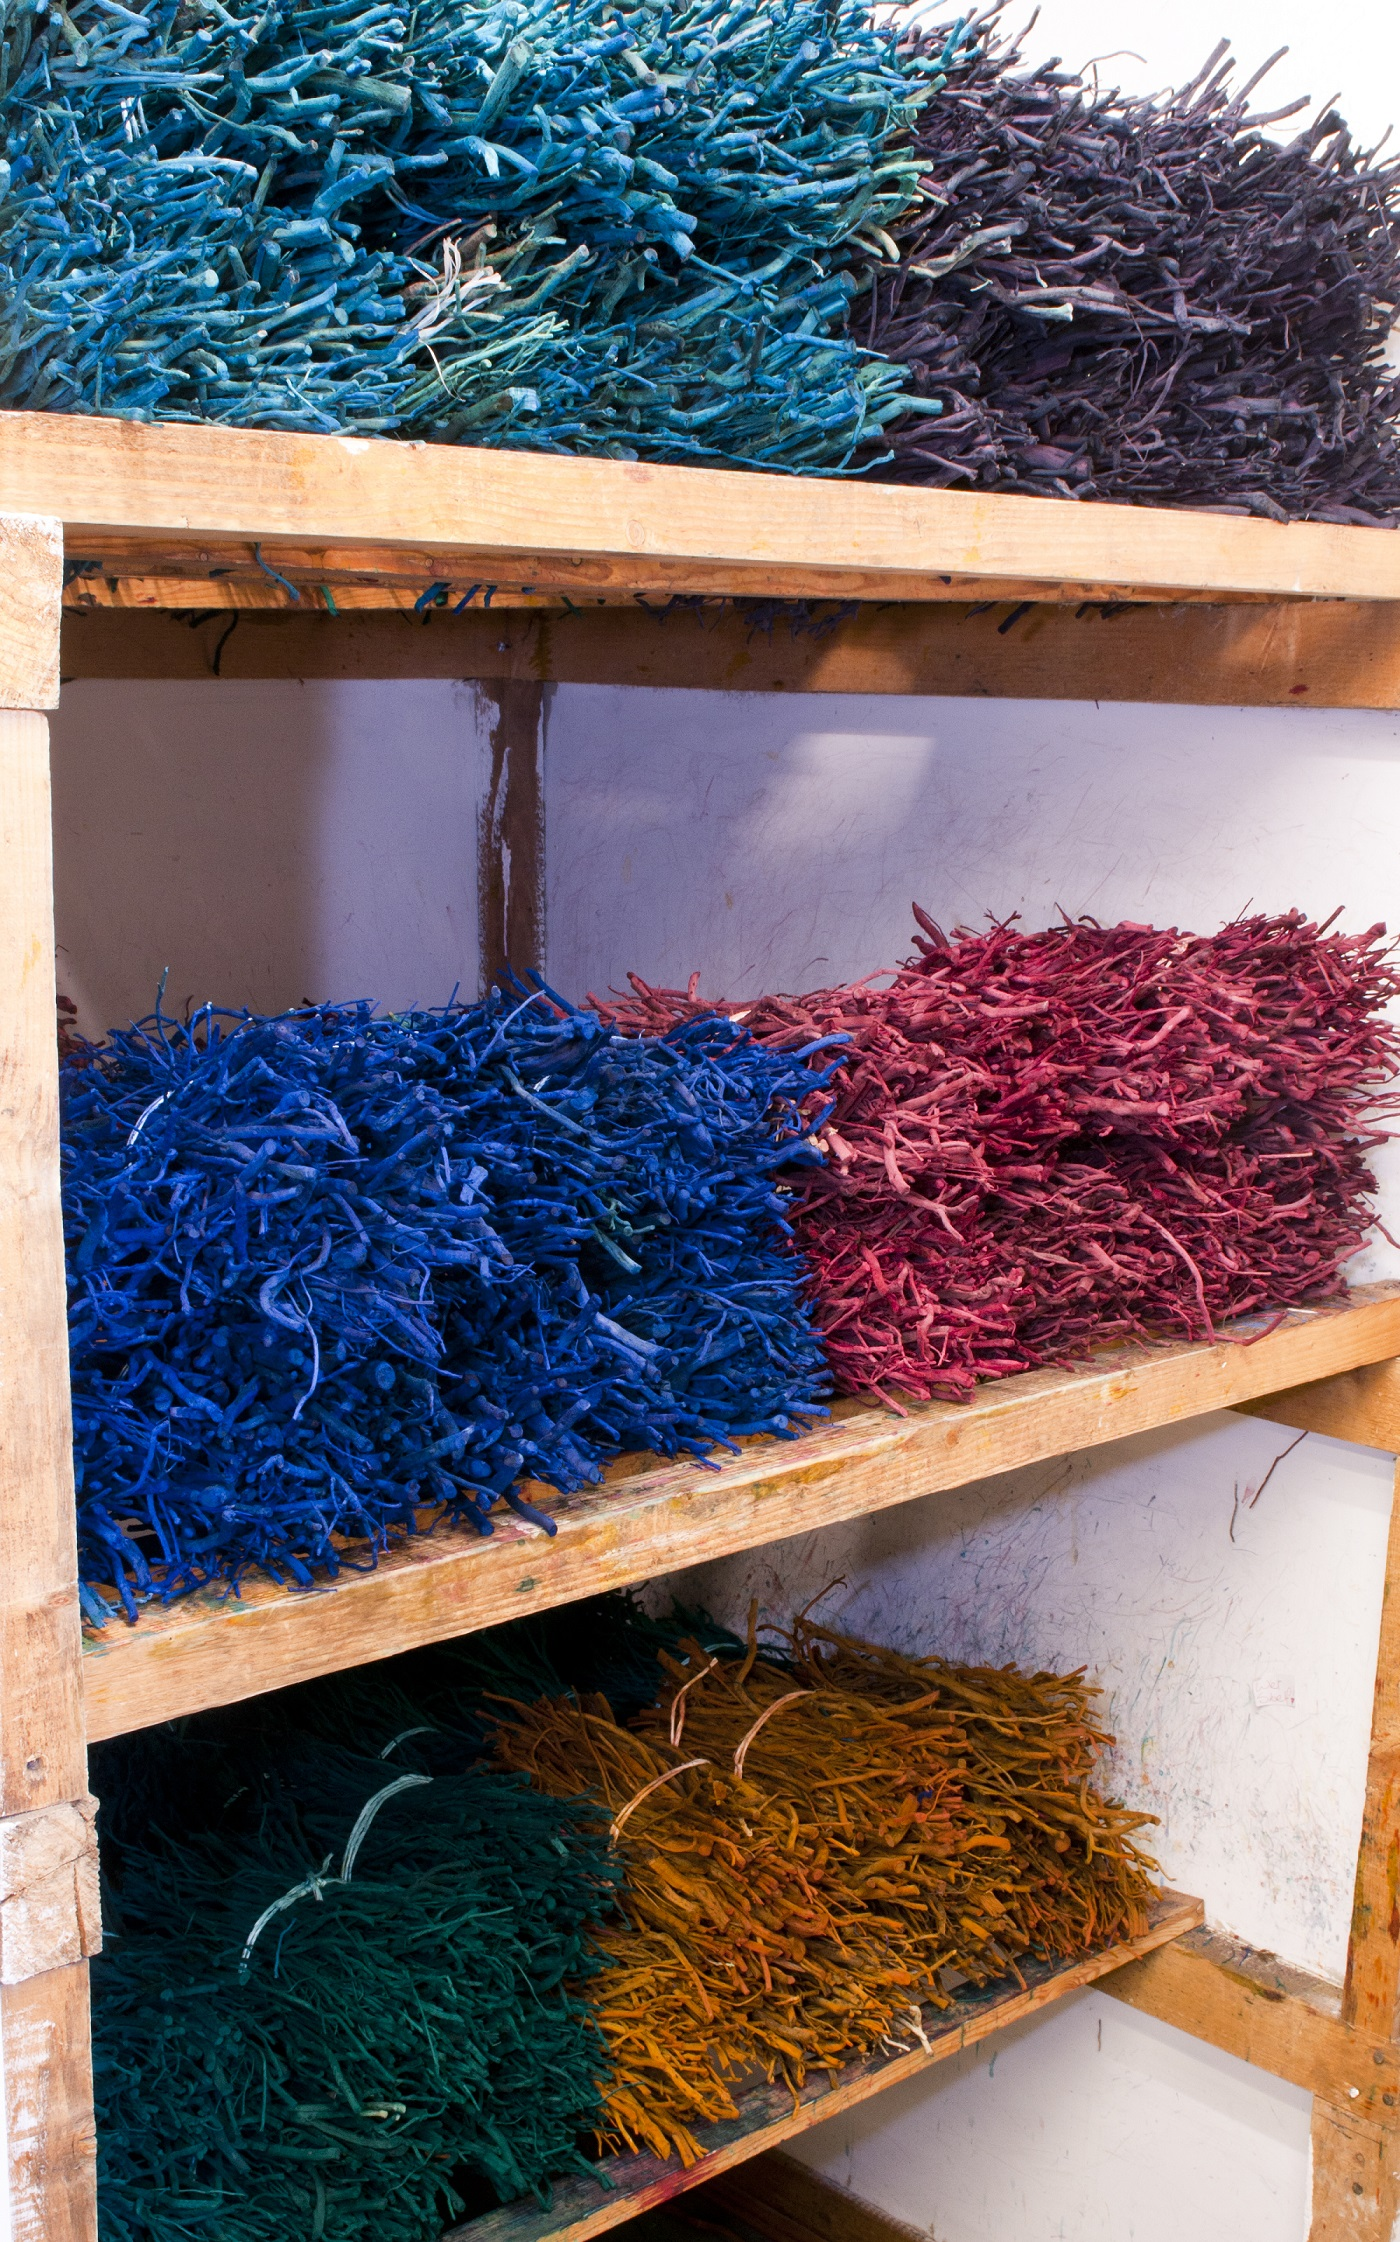 Dyed Heather Stems